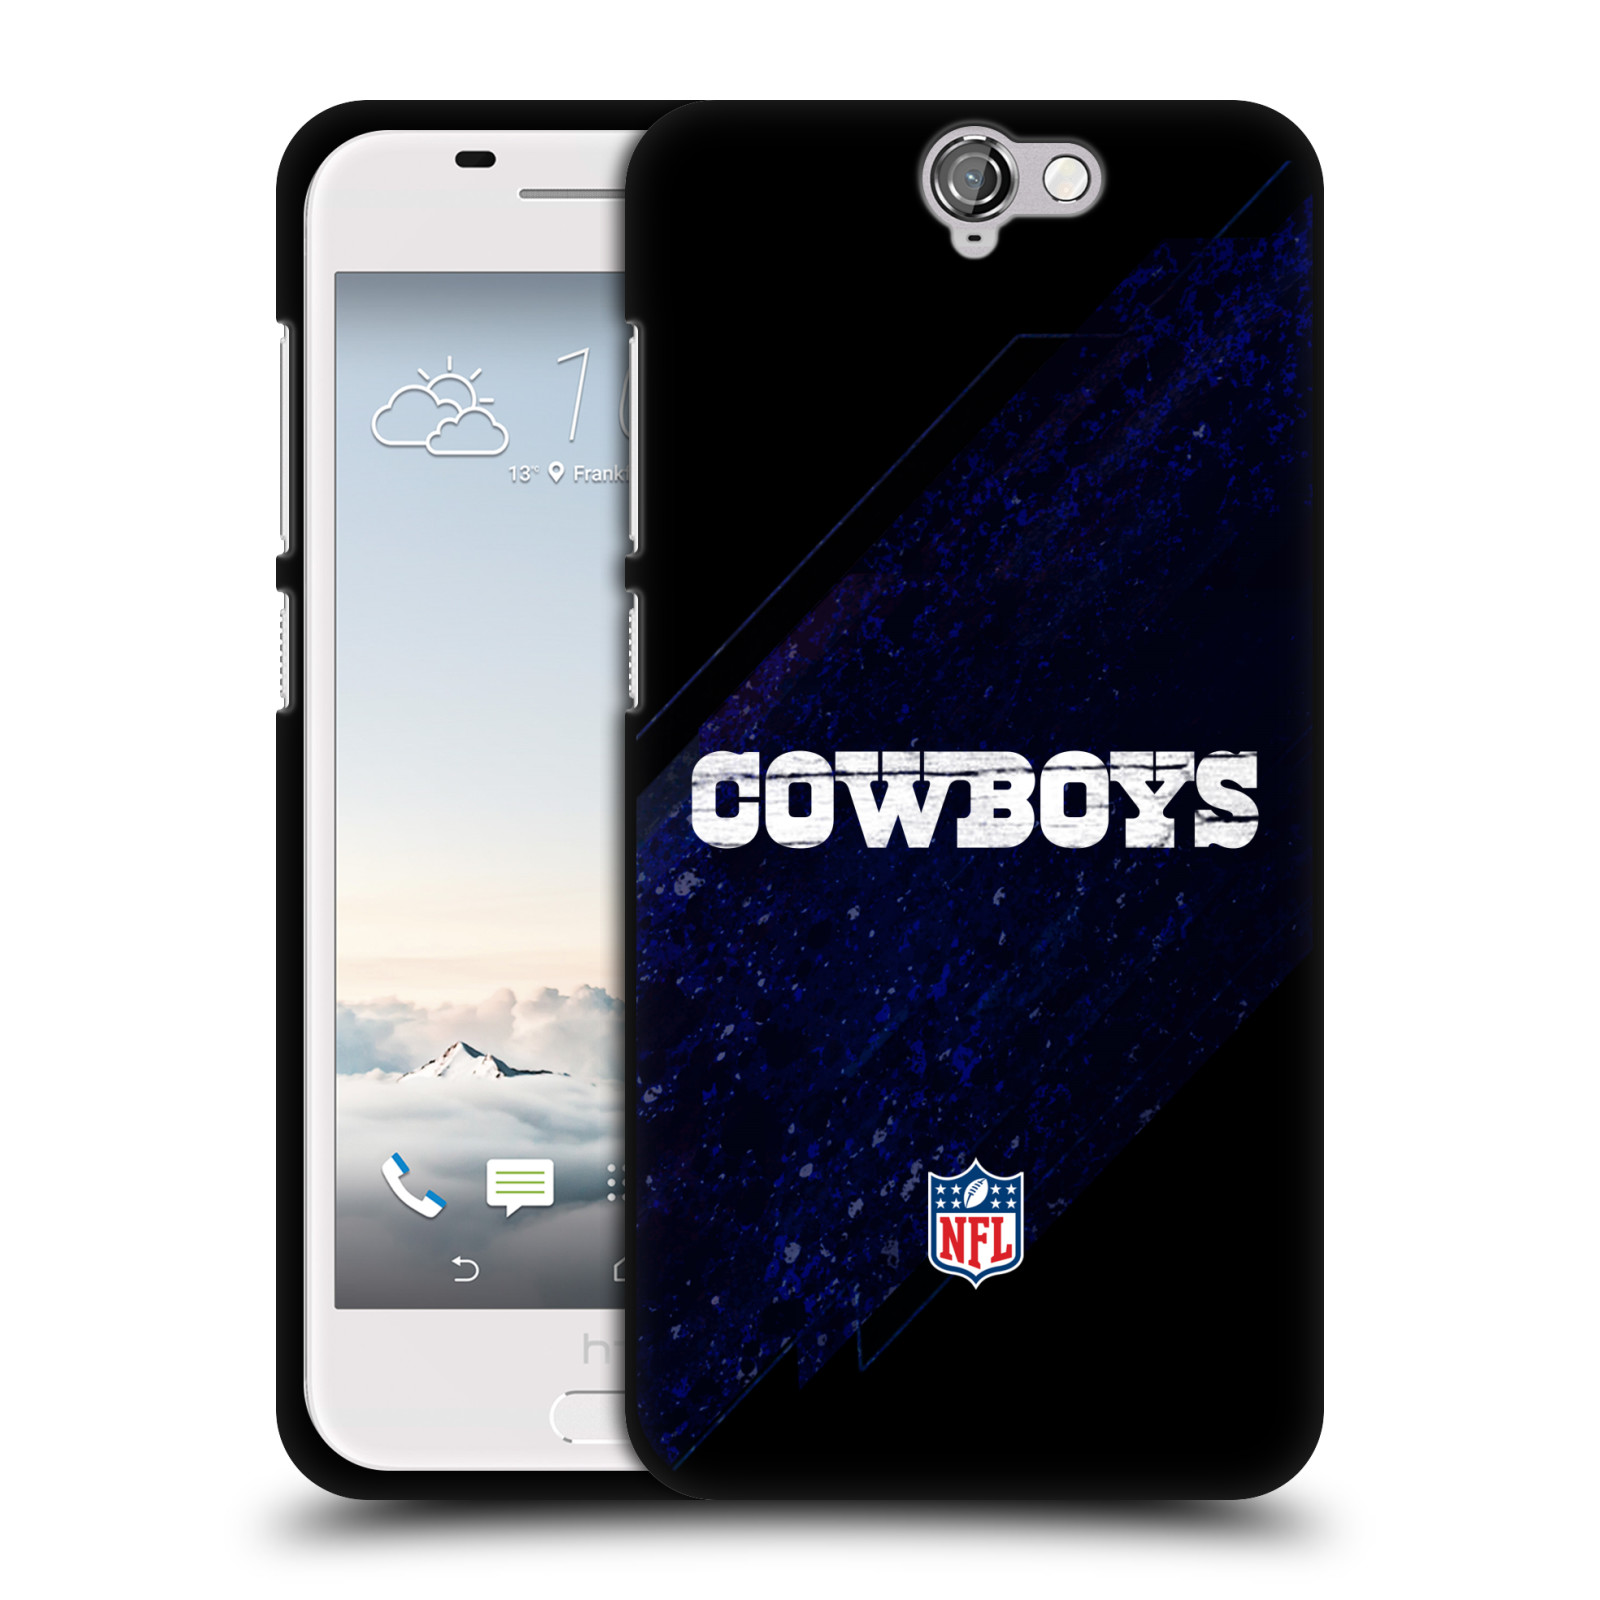 OFFICIAL-NFL-DALLAS-COWBOYS-LOGO-BLACK-SOFT-GEL-CASE-FOR-HTC-PHONES